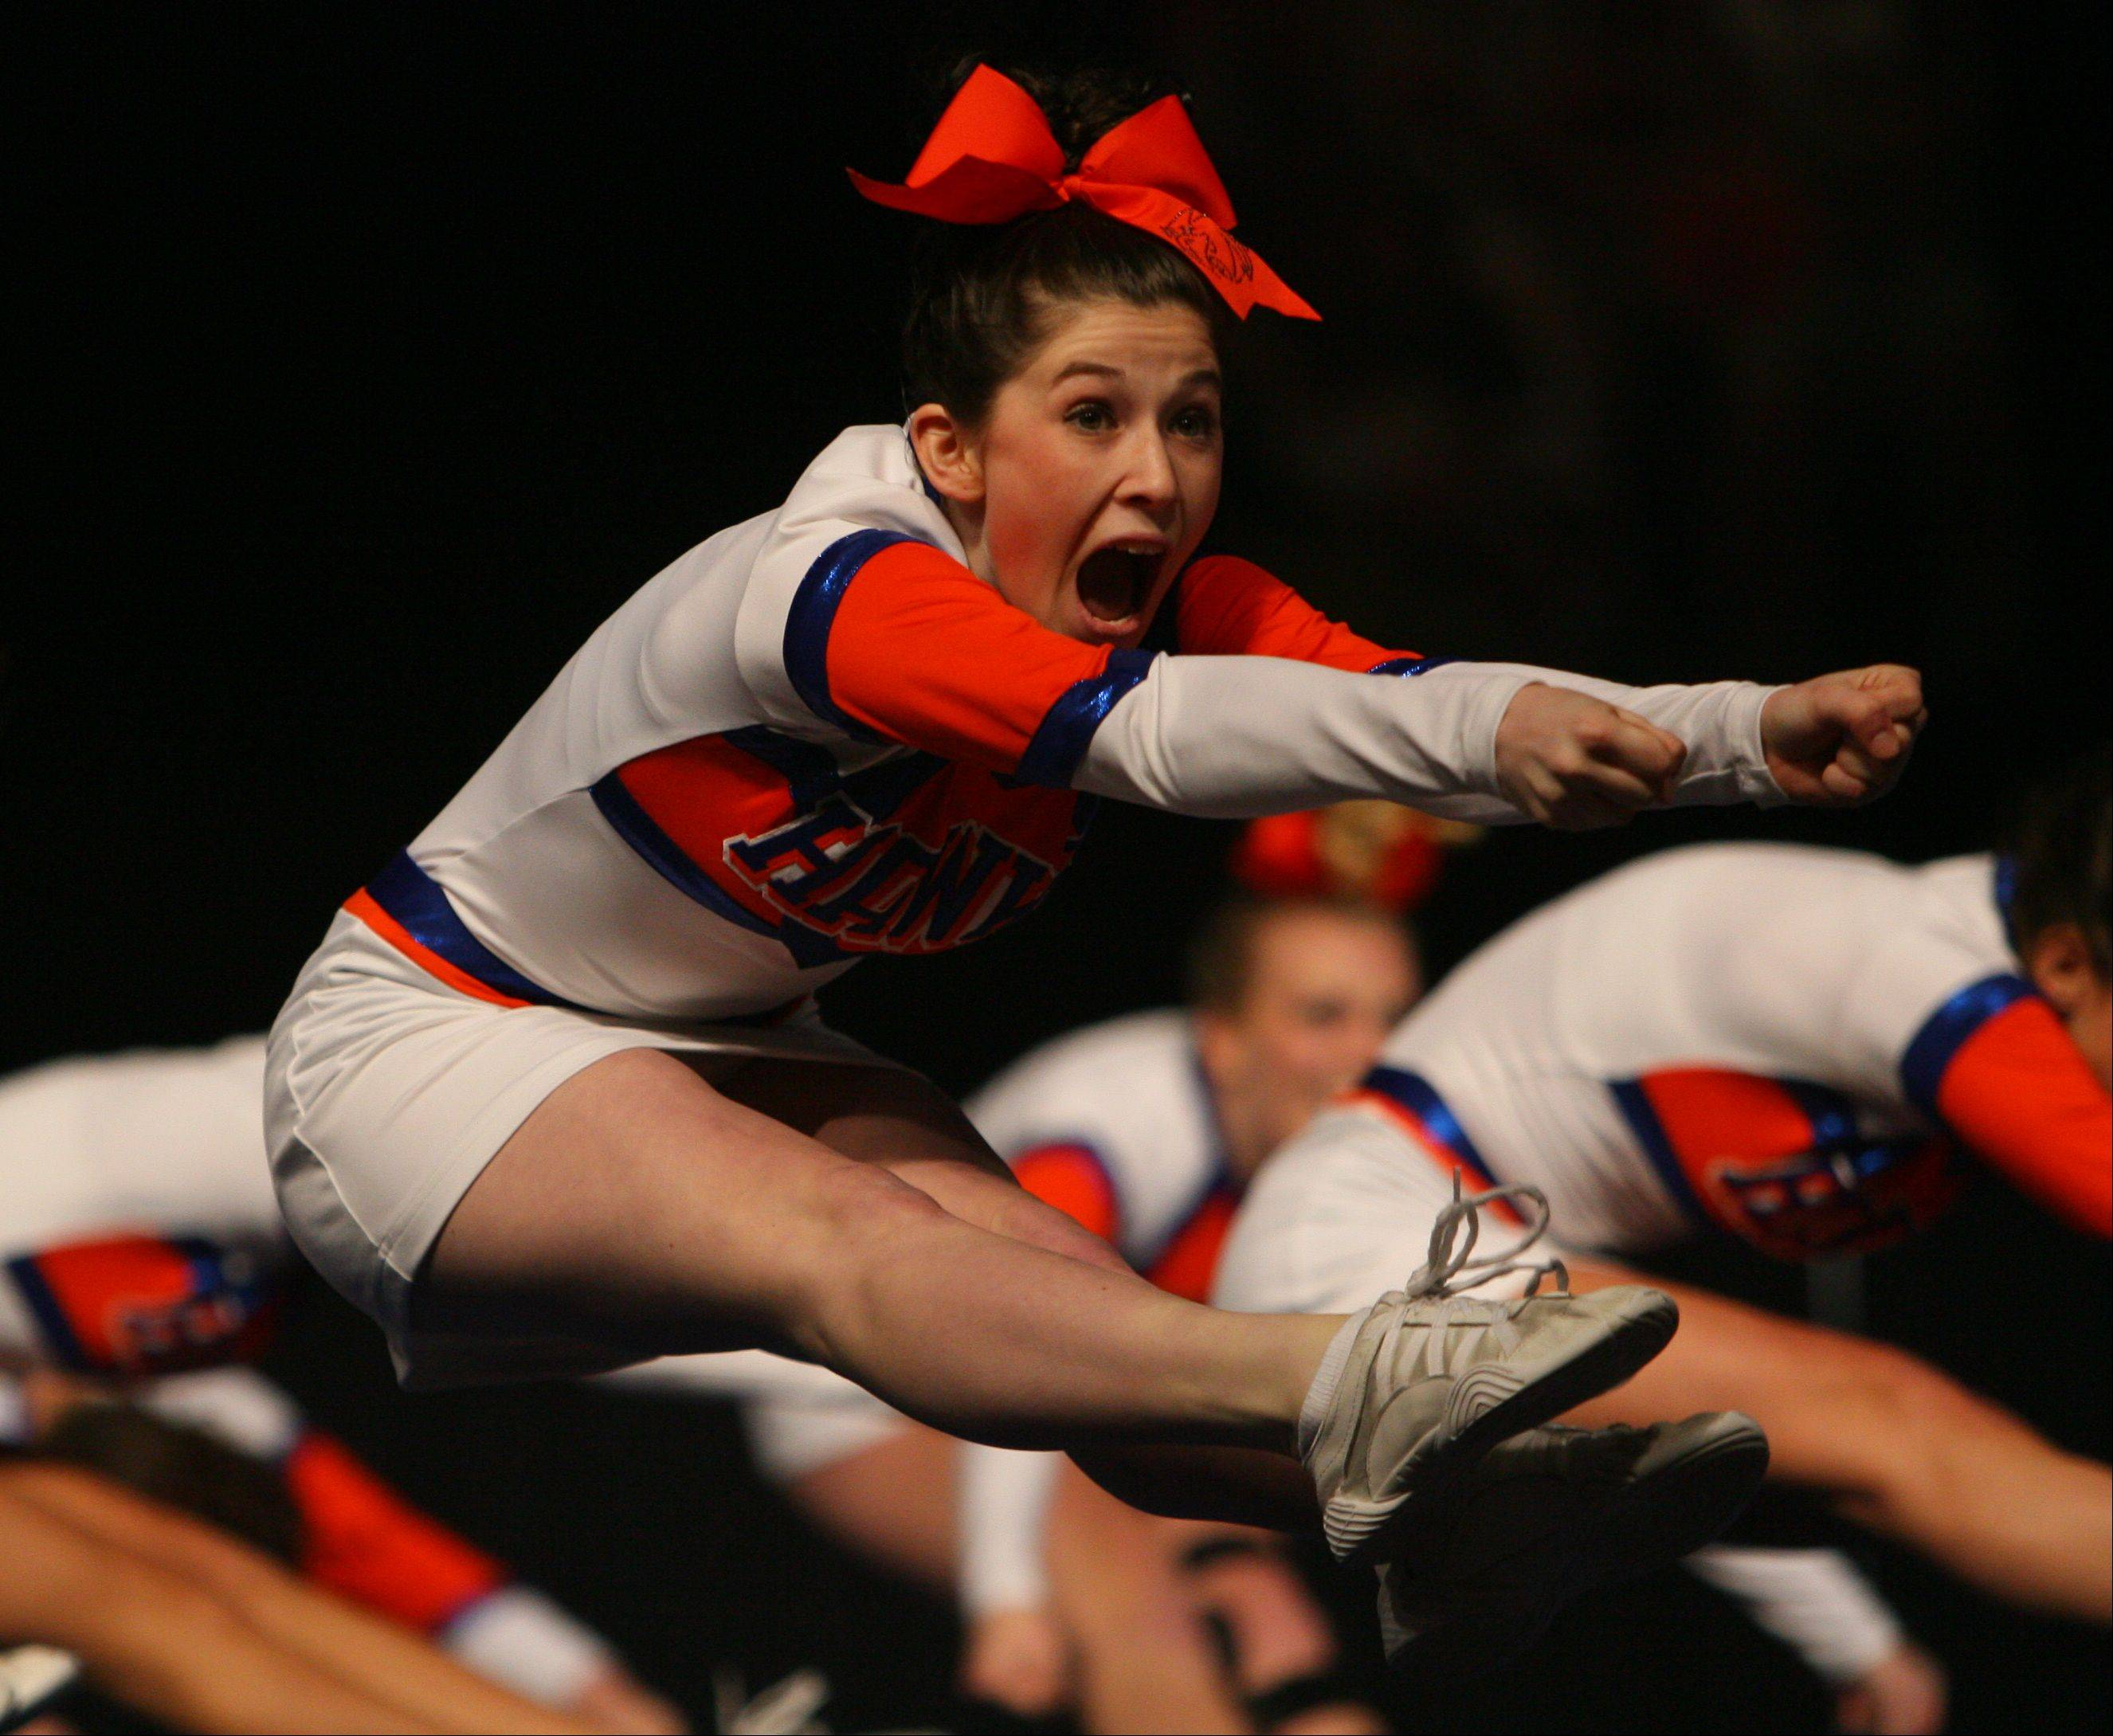 Hoffman Estates High School competes in the in the Competitive Cheerleading prelims on Friday at the U.S. Cellular Coliseum in Bloomington.